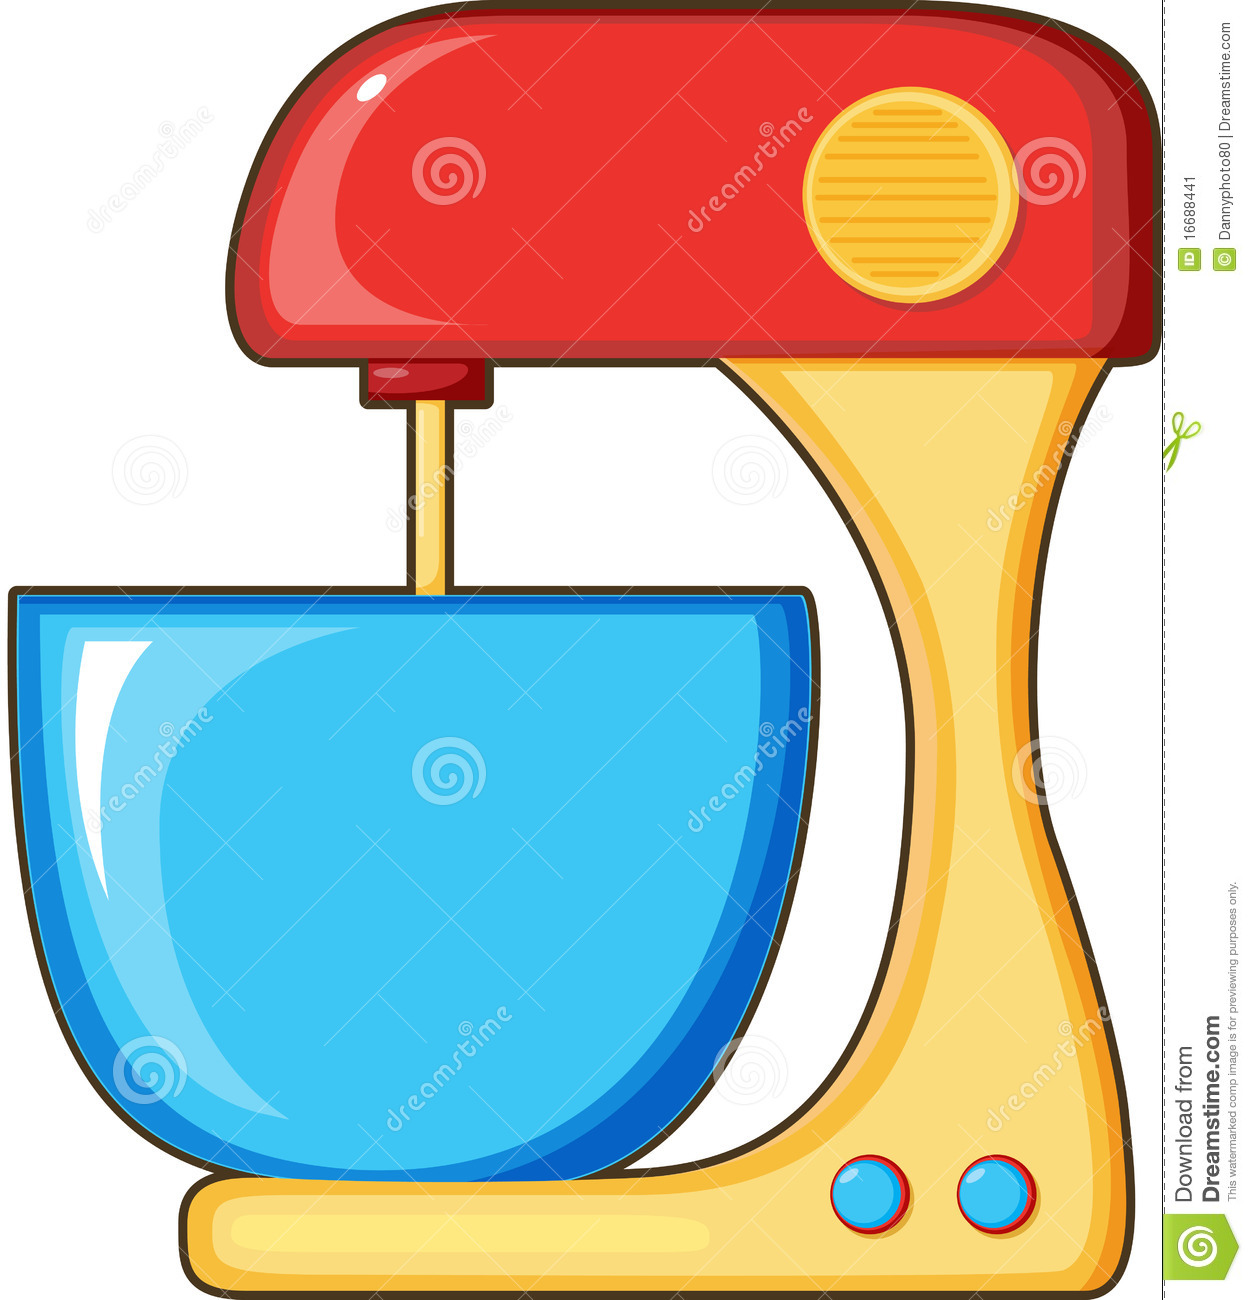 Kitchen Appliances Clip Art ~ Kitchen appliances stock image